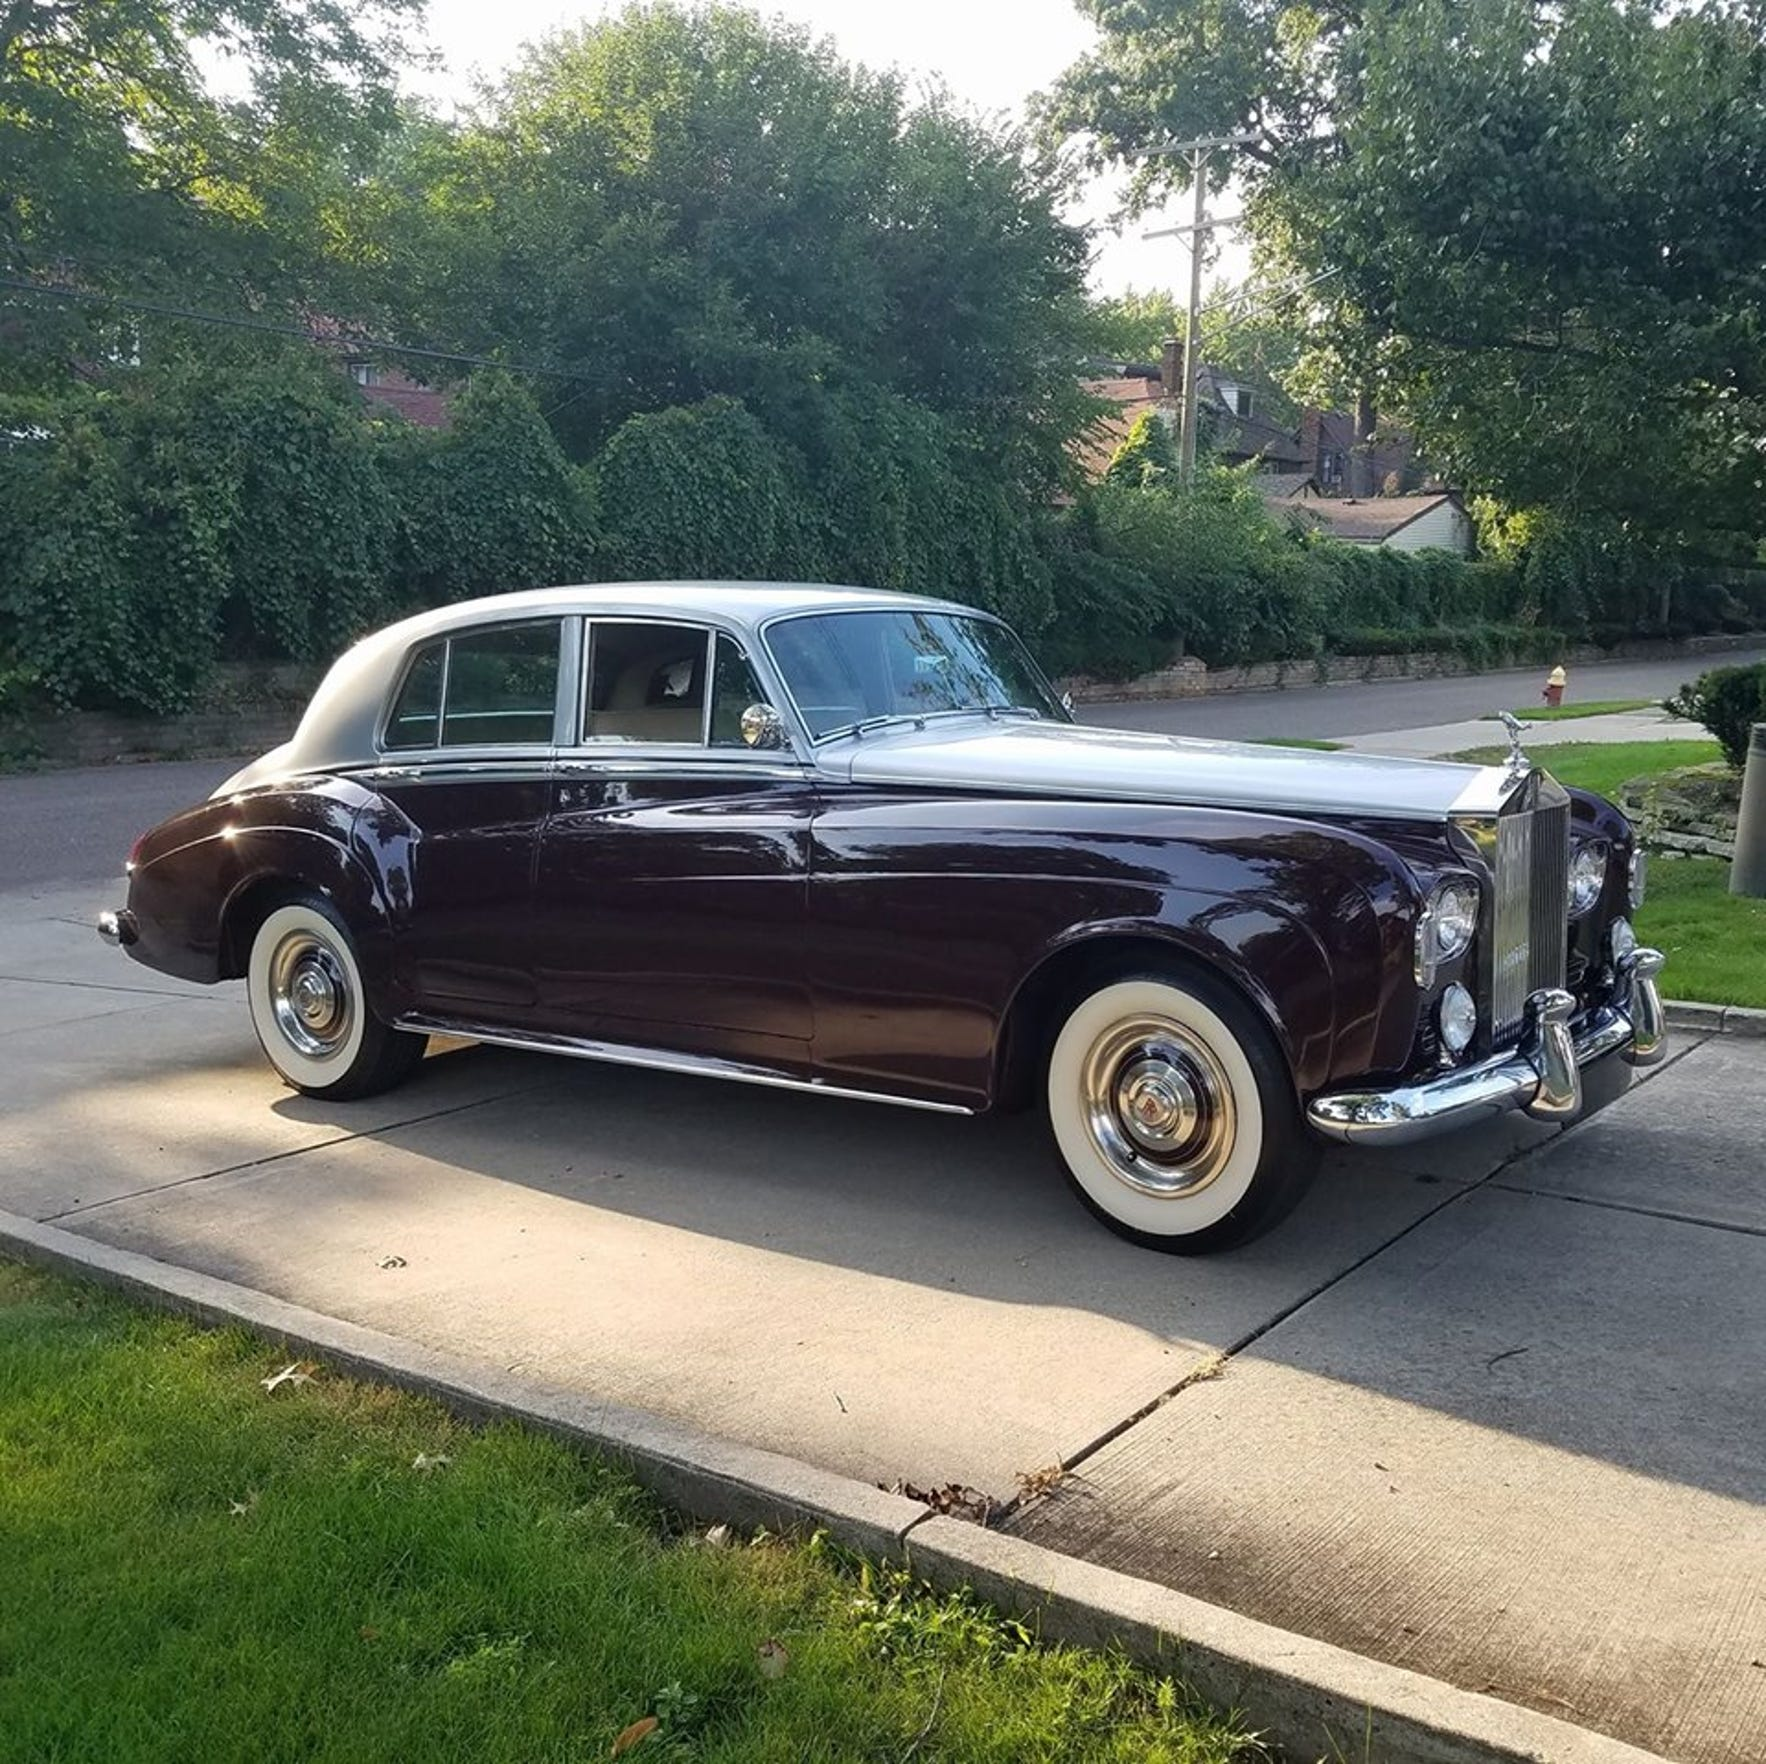 Dr. David Lewis' Facebook page features photos of his 1965 Rolls-Royce Silver Cloud.